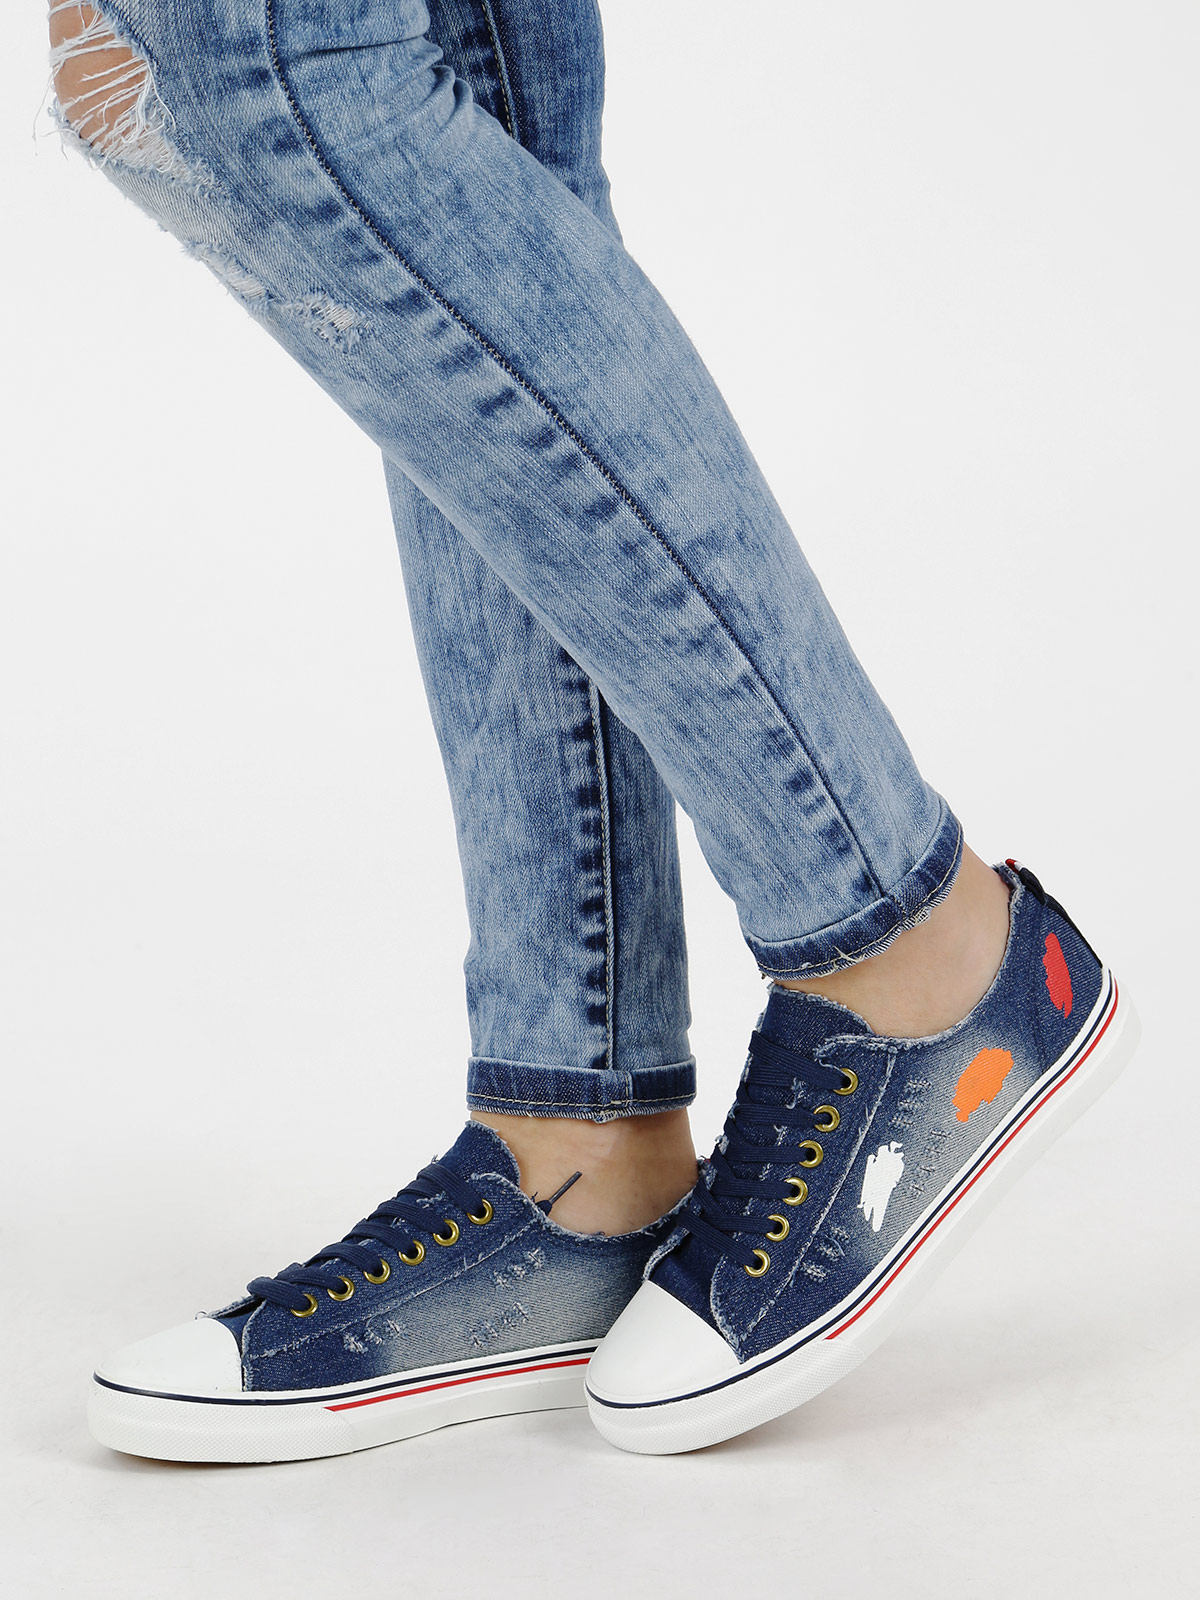 JANESSA Shoe Effect Jeans